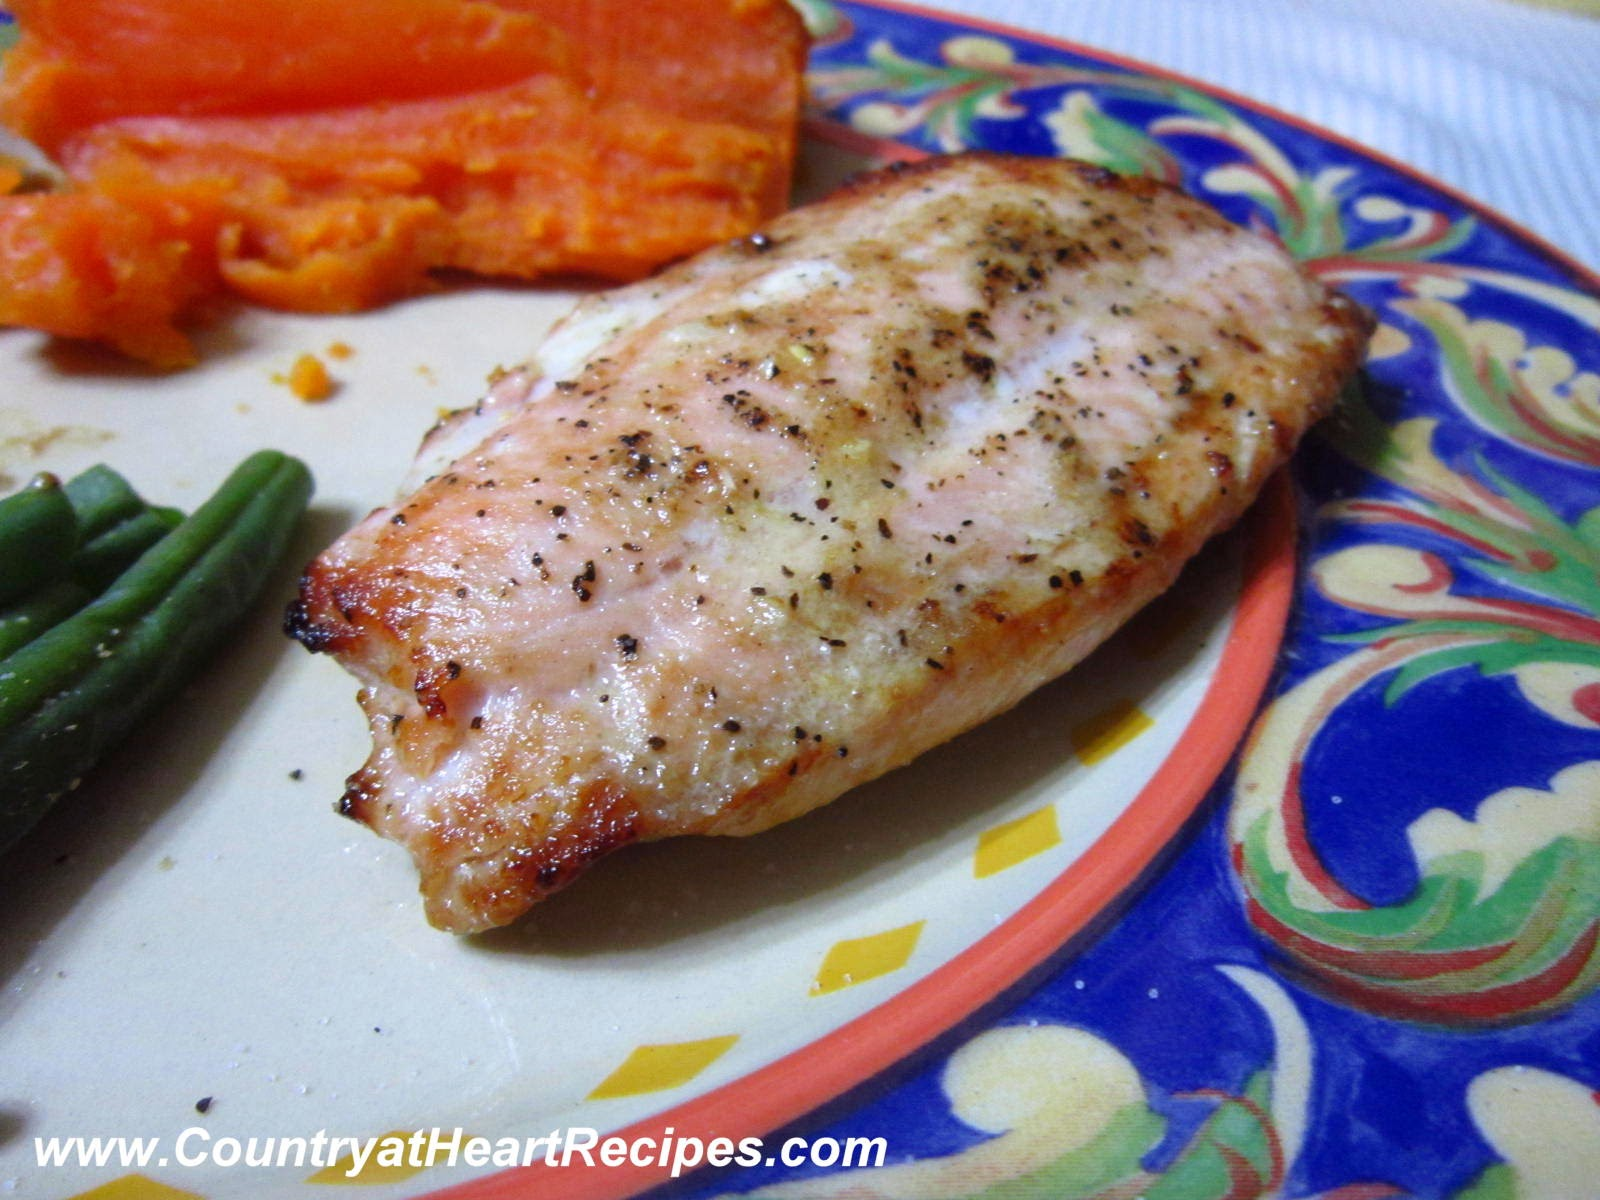 Country at Heart Recipes: Baked Salmon with Dijon Marinade